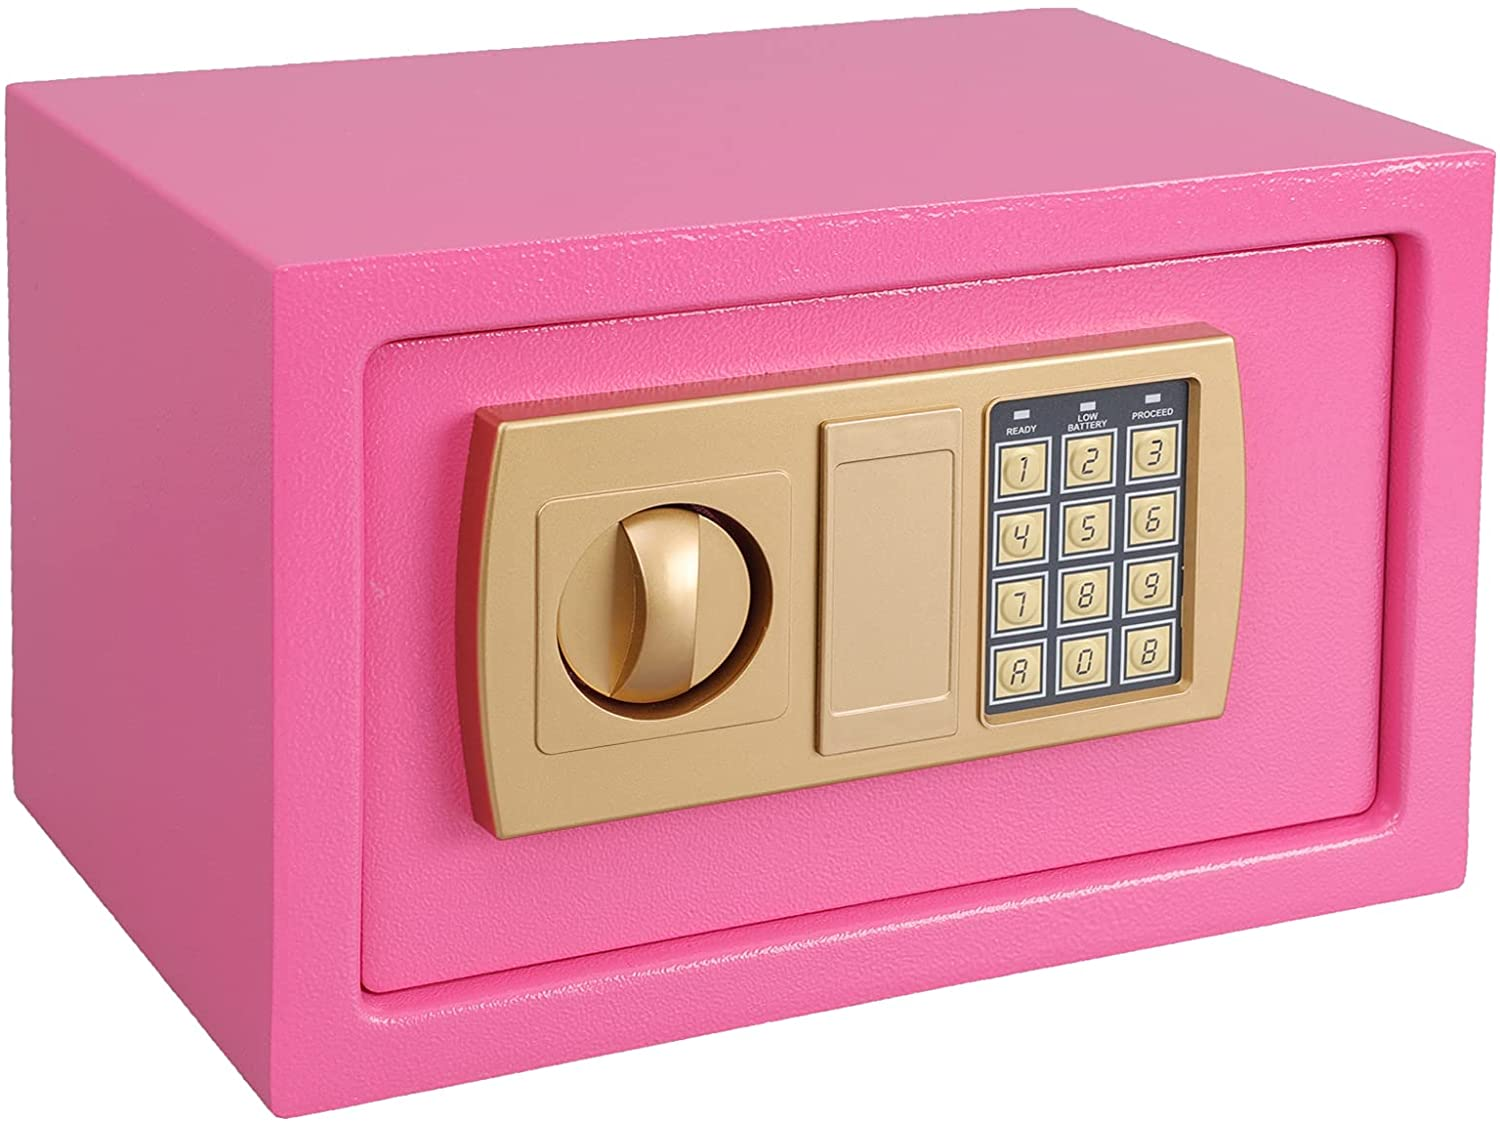 KYODOLED Digital Safe-Electronic Steel Safe with Keypad to the Wall, Medium Personal Security Locked Cabinet for Home Money,Office,Hotel Business,In the Shelf or Drawer,0.43Cubic Feet,Pink